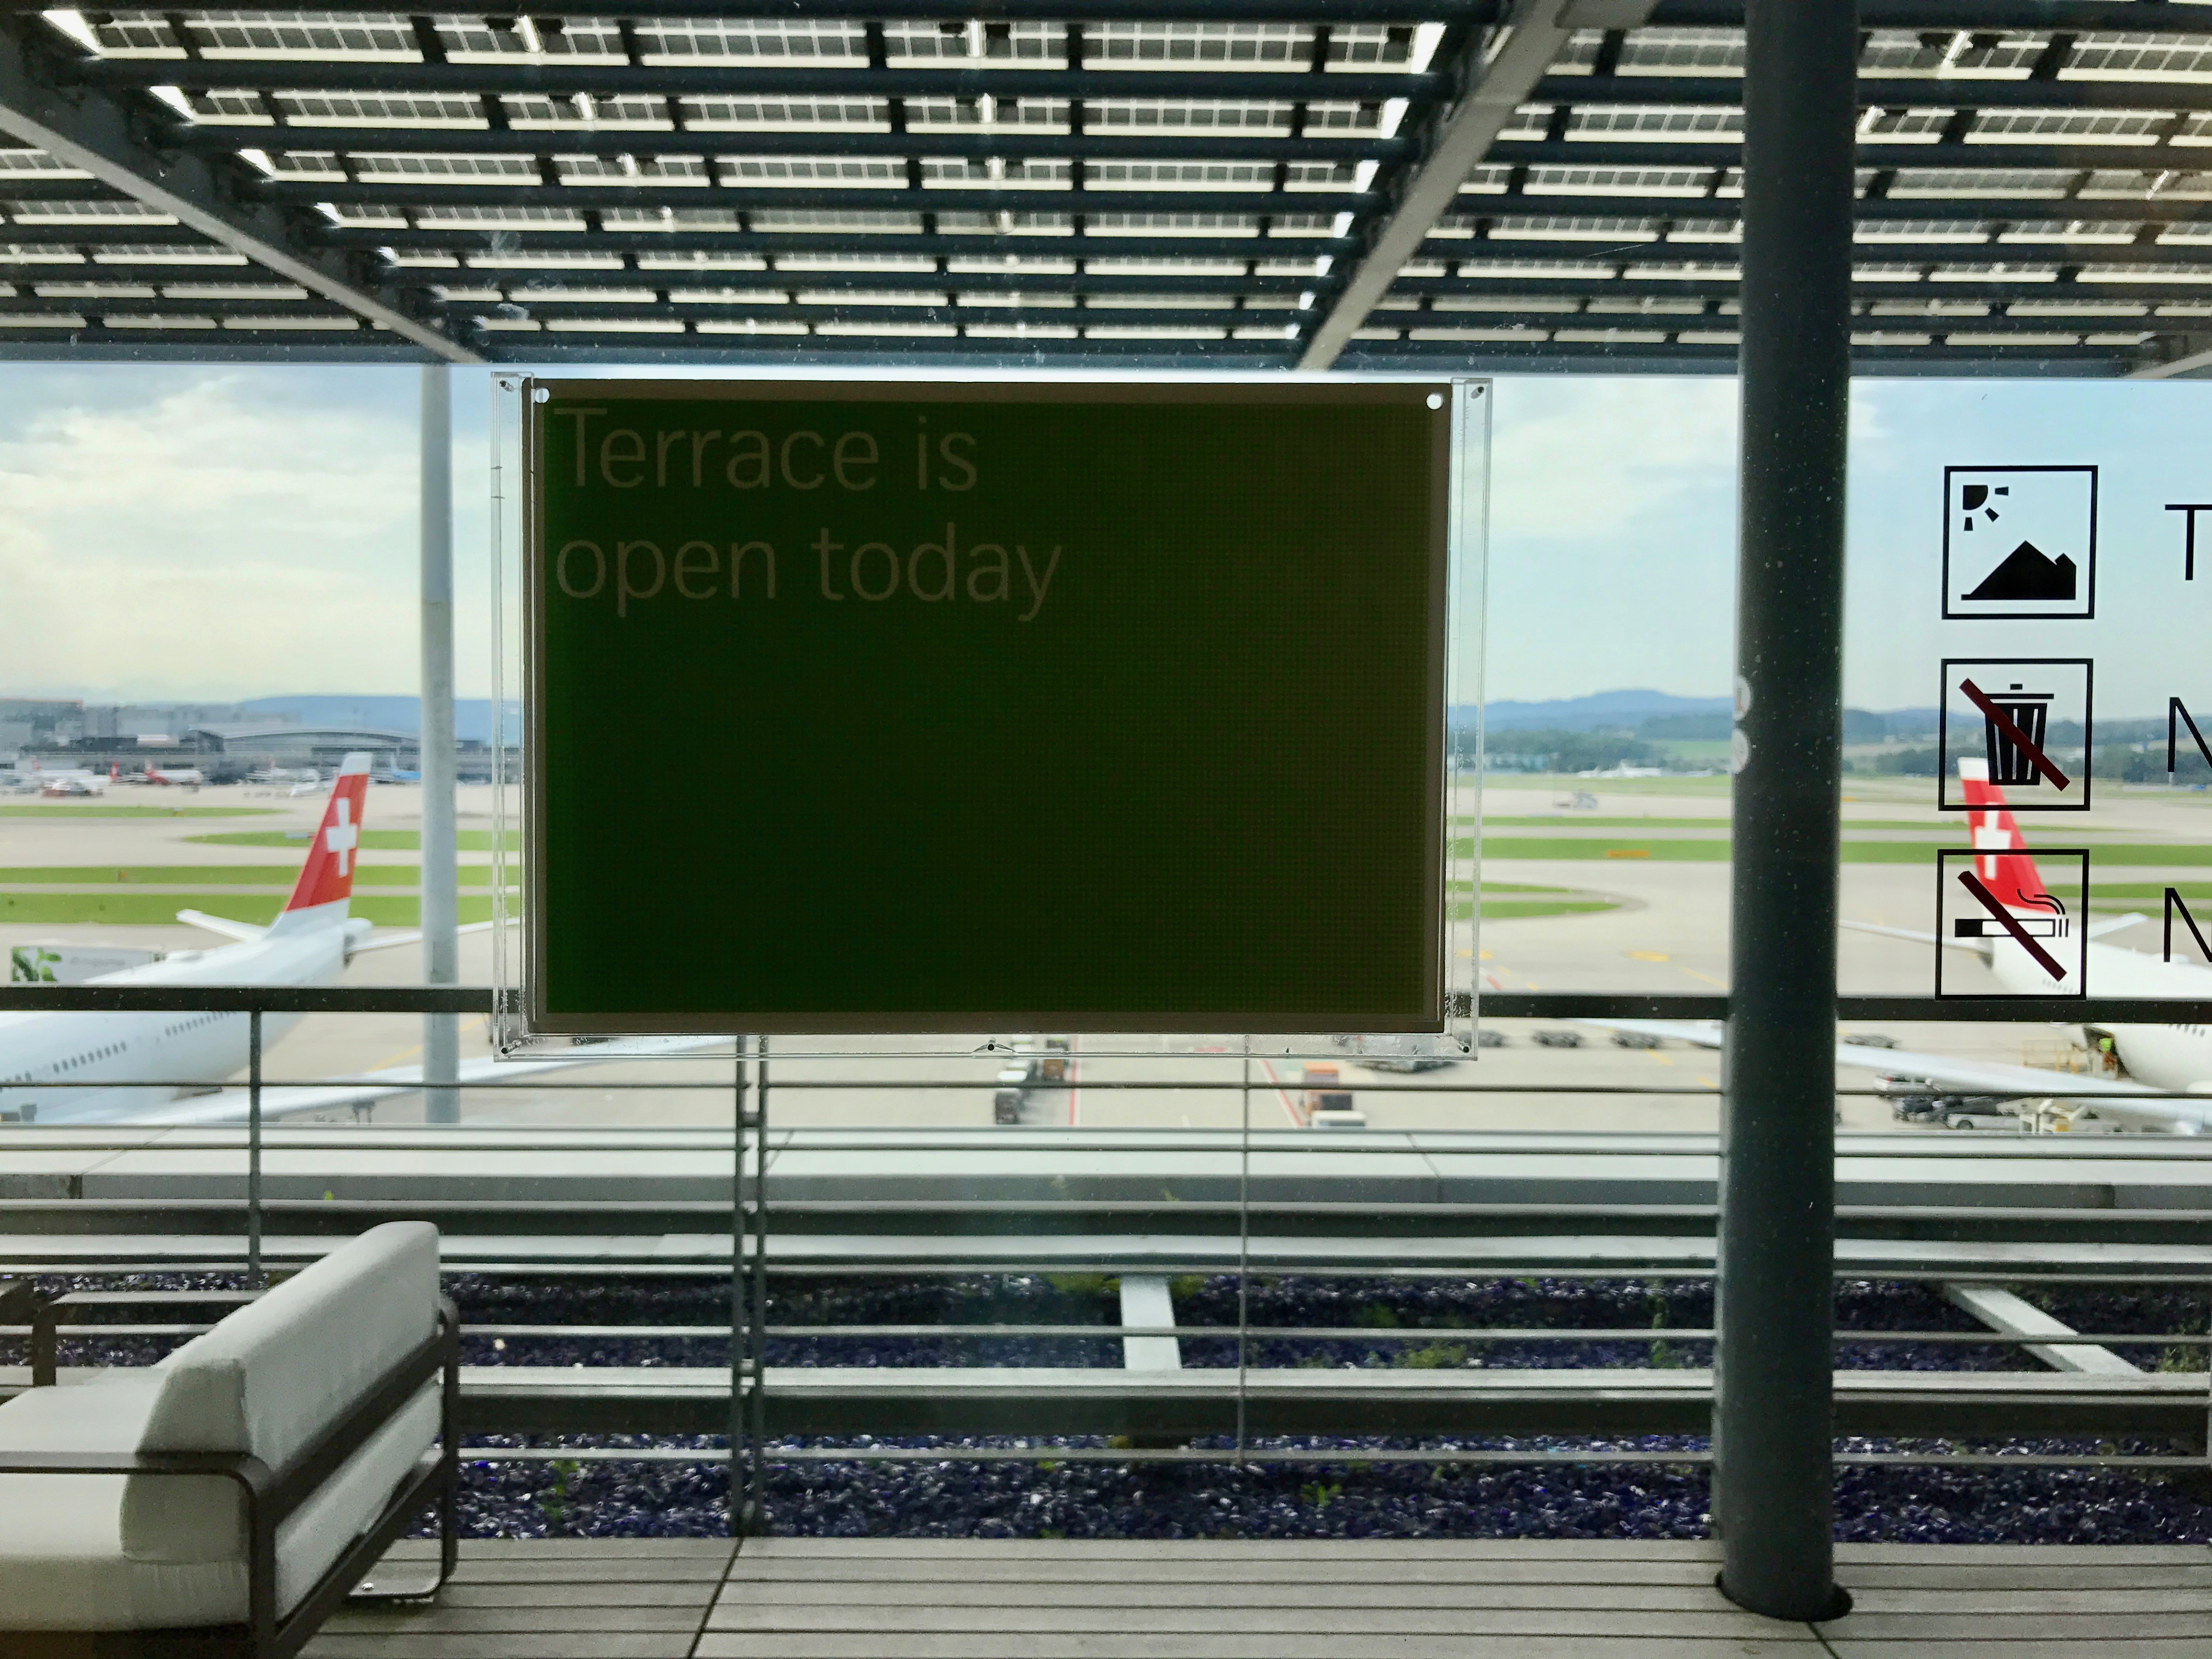 Swiss First Class Lounge at Zurich entrance to the terrace